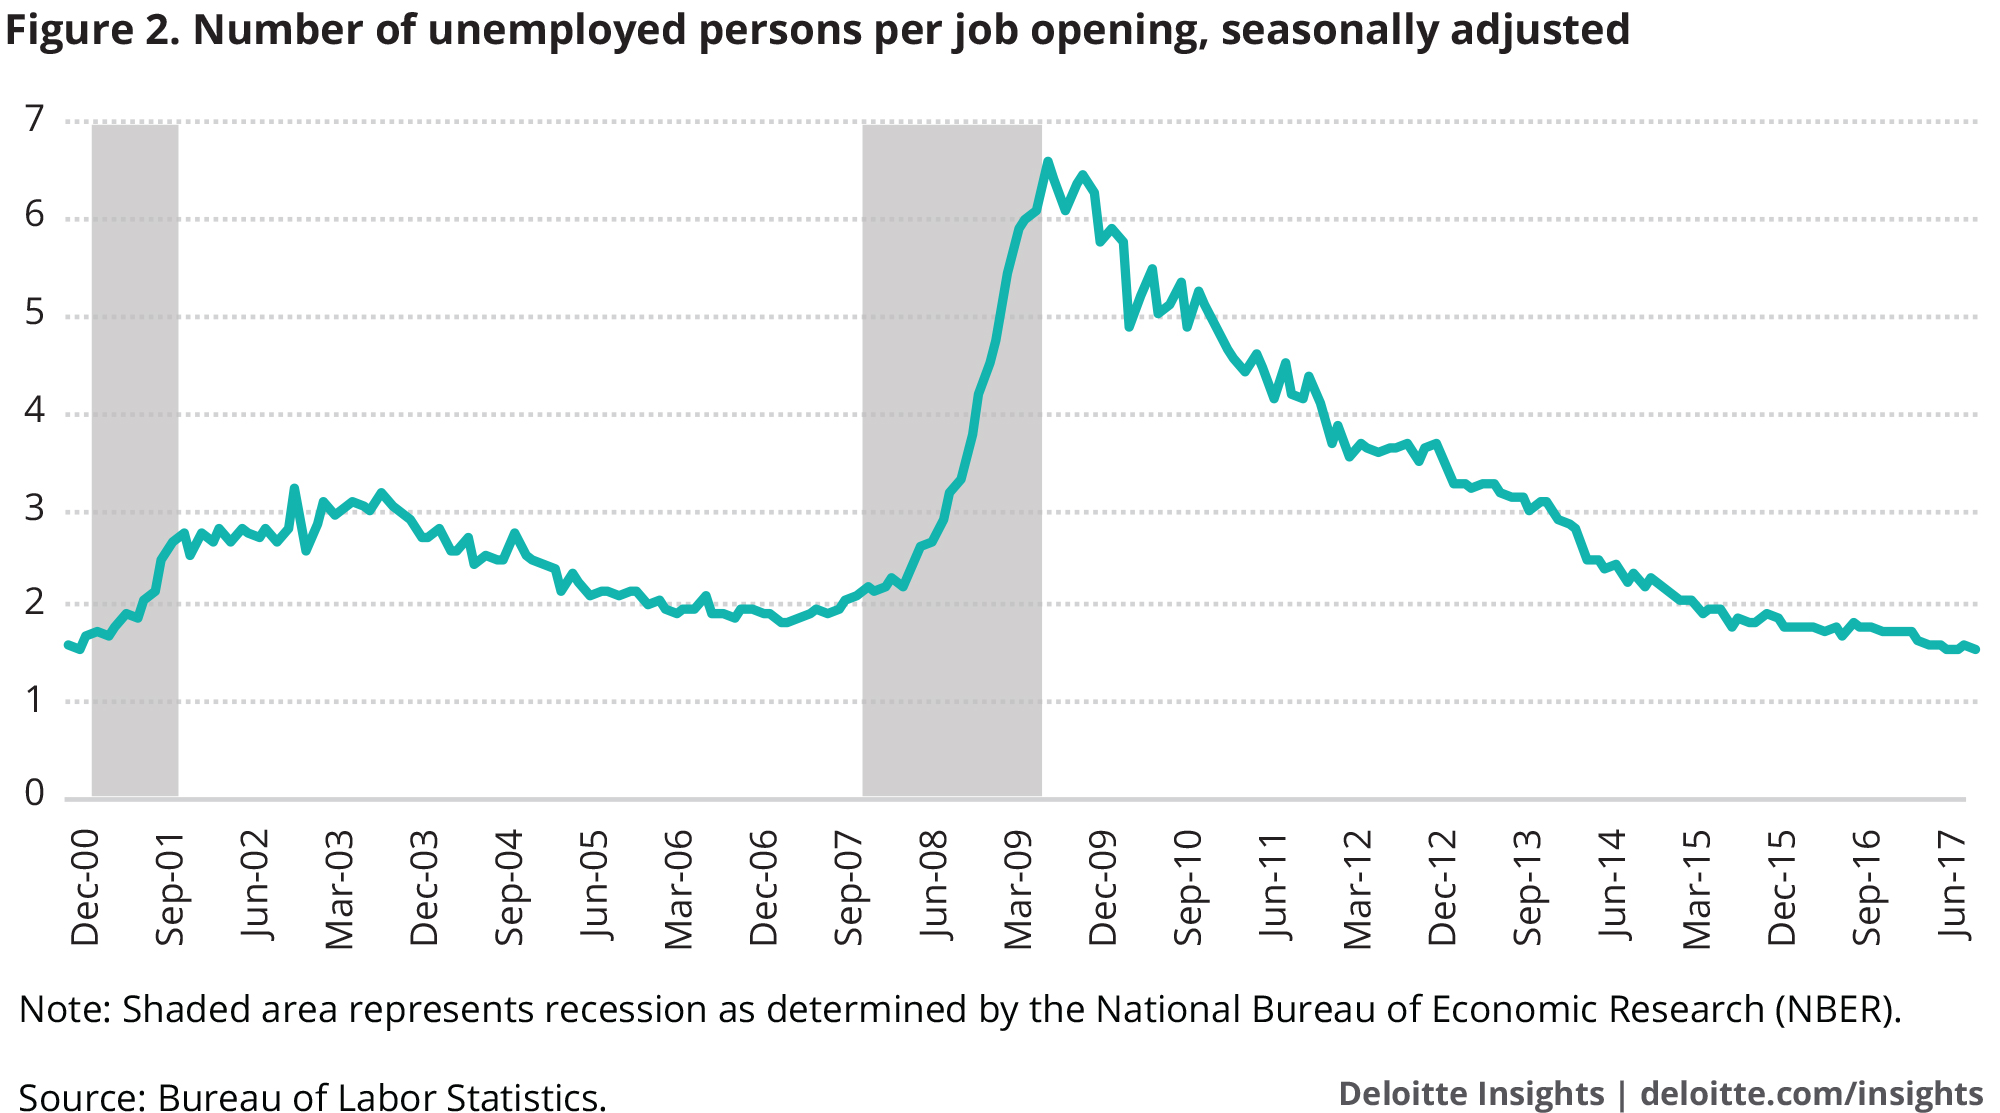 Number of unemployed persons per job opening, seasonally adjusted